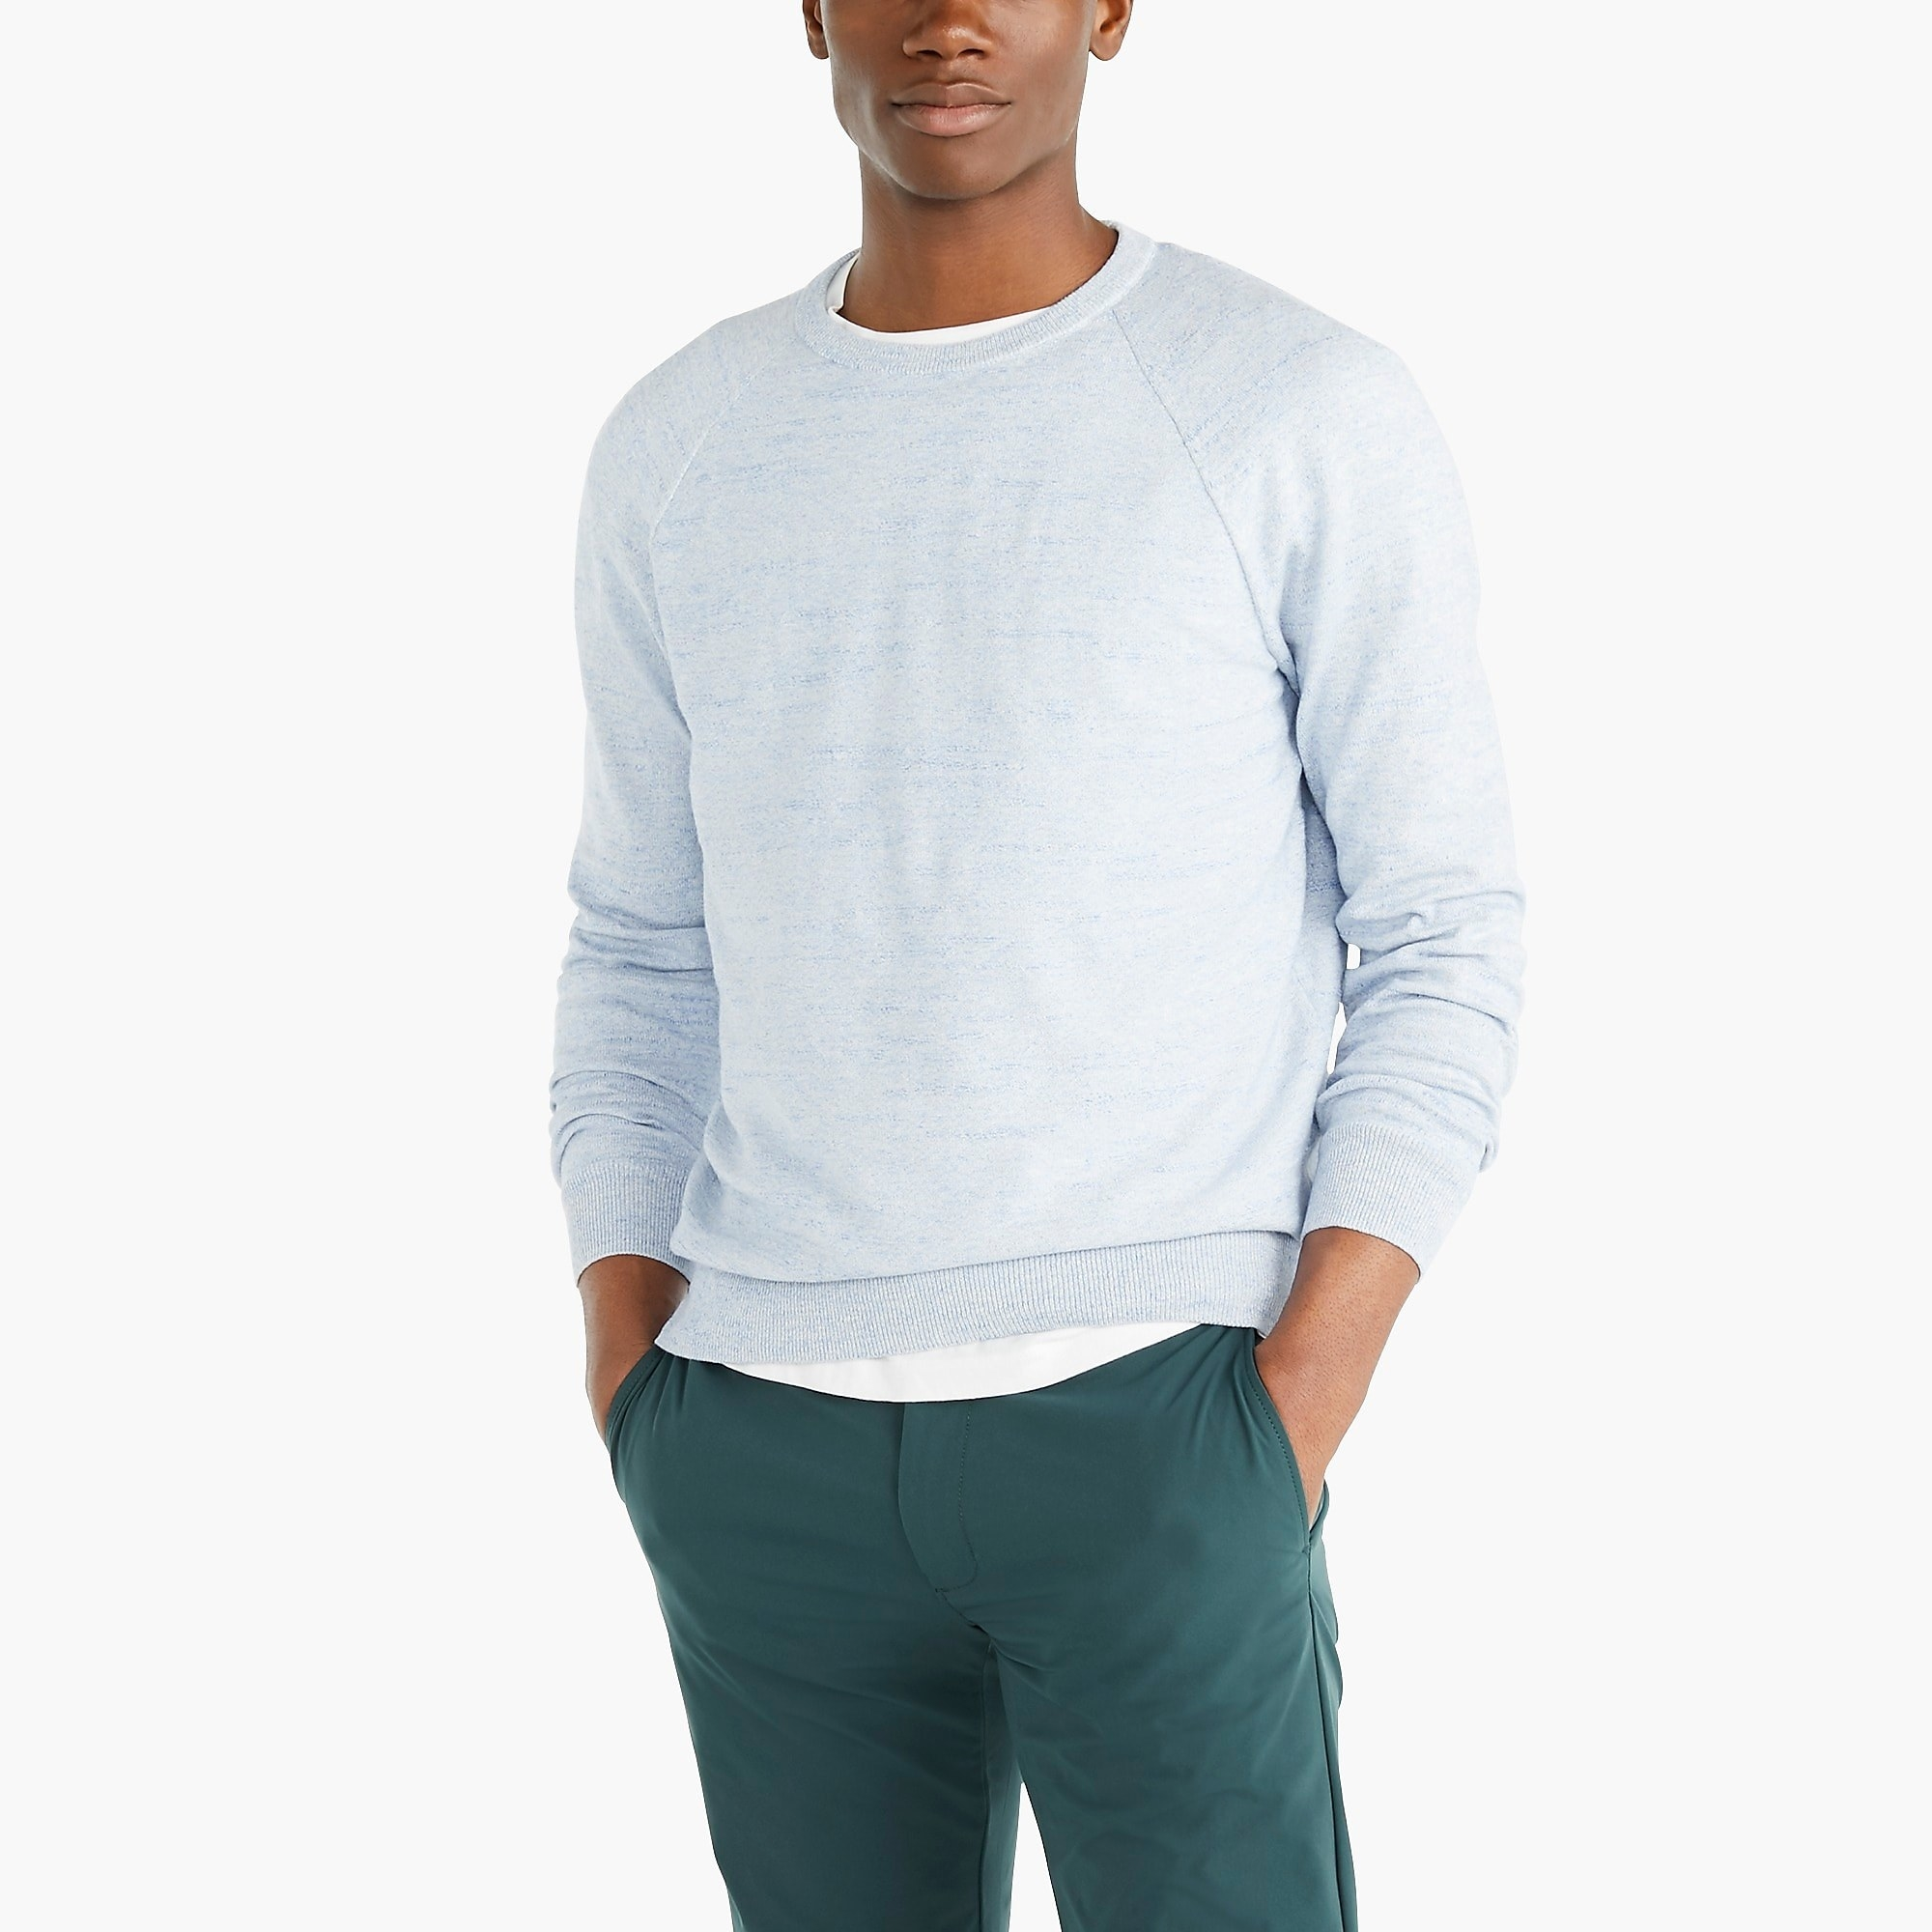 Model wearing heather sky-colored crewneck sweater over green pants